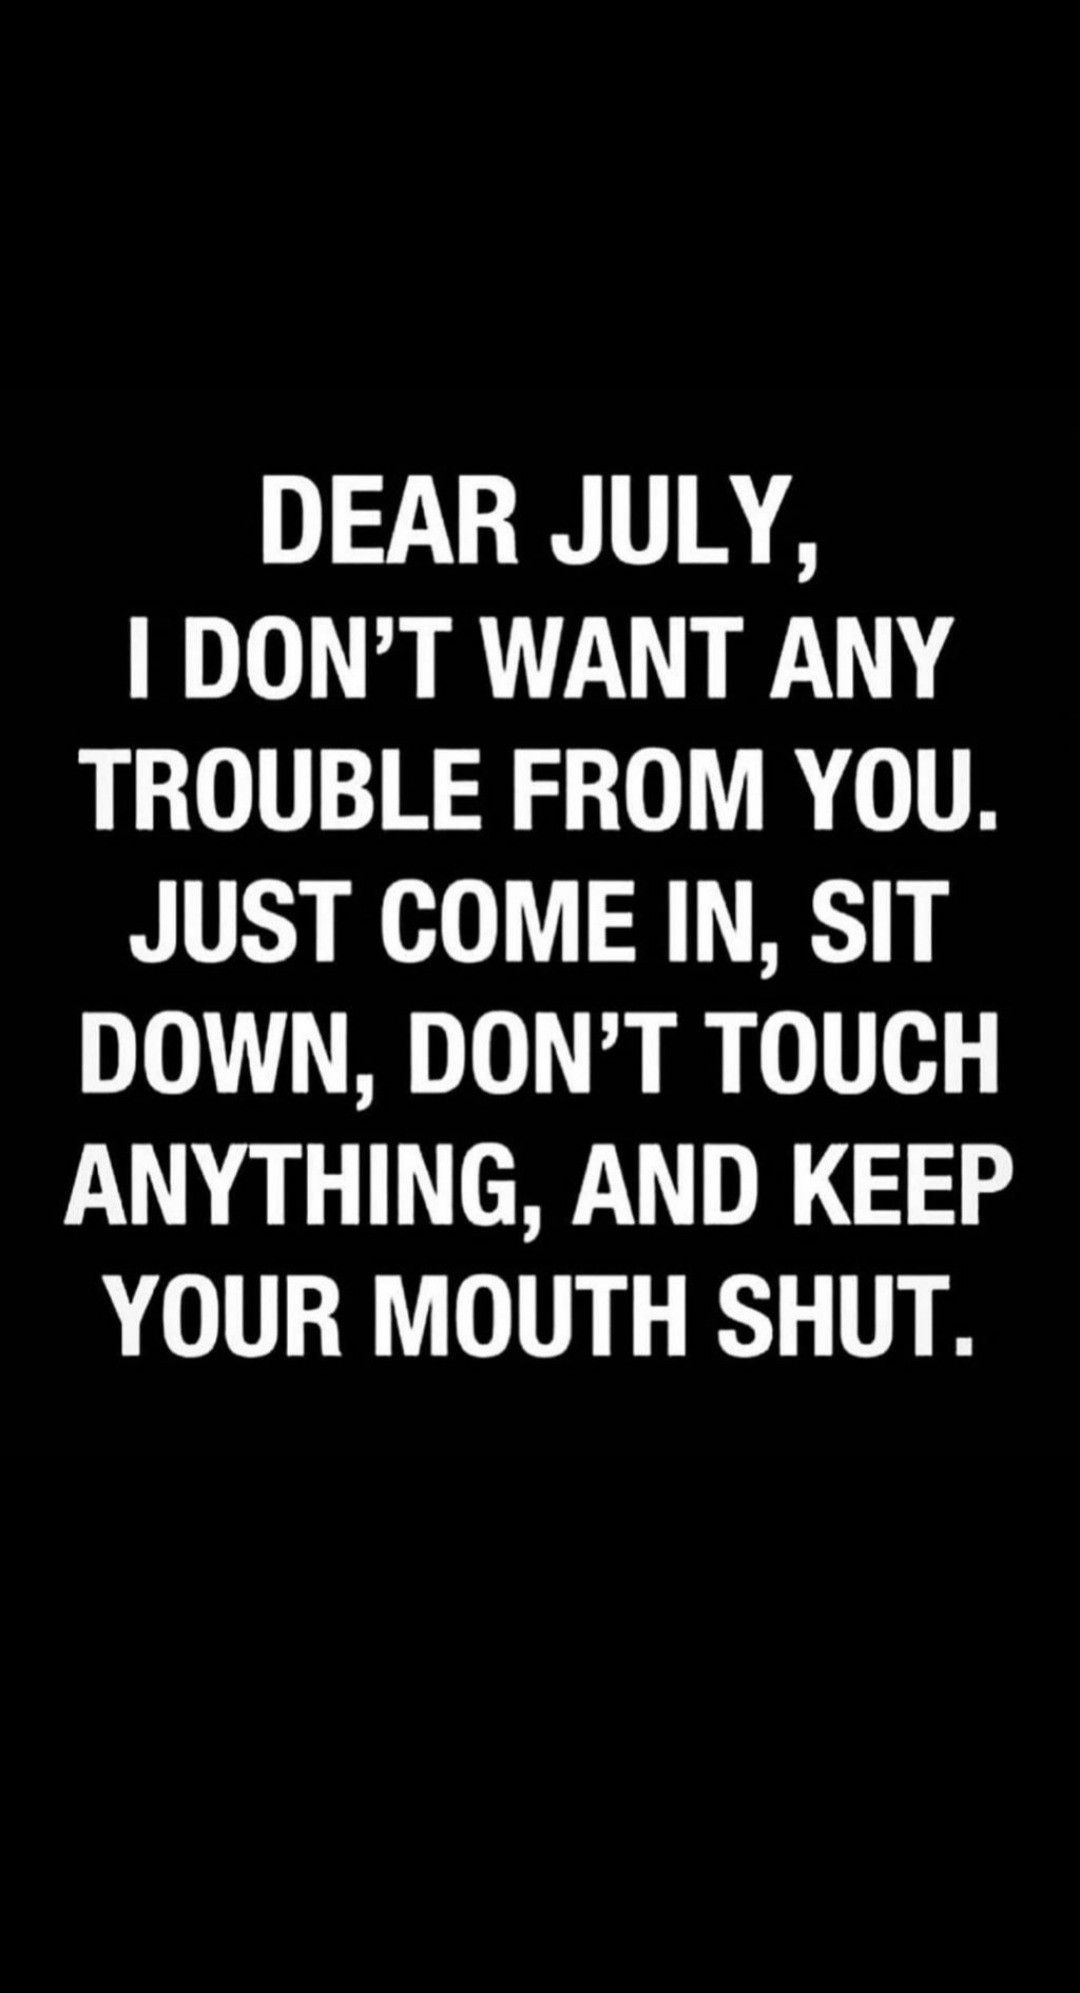 Behave July 2020 Funny Funny Wife Quotes Funny Mom Quotes Feeling Happy Quotes